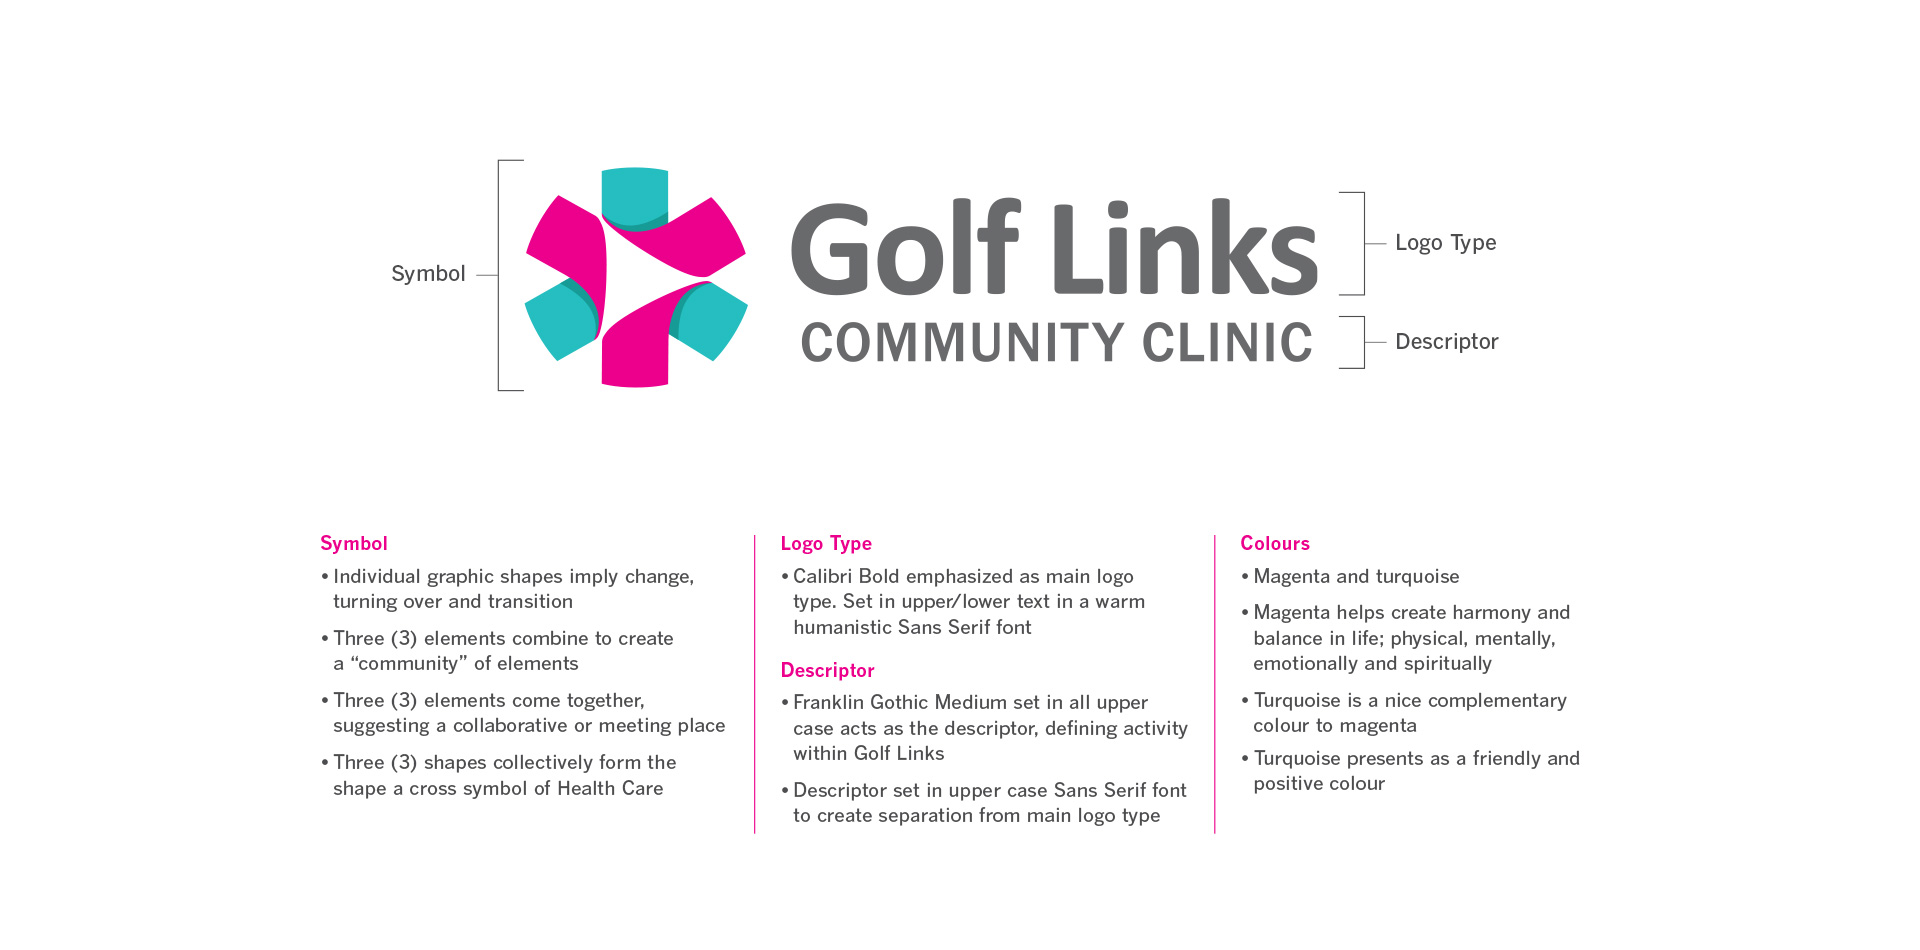 Golf Links Community Clinic Logo Breakdown